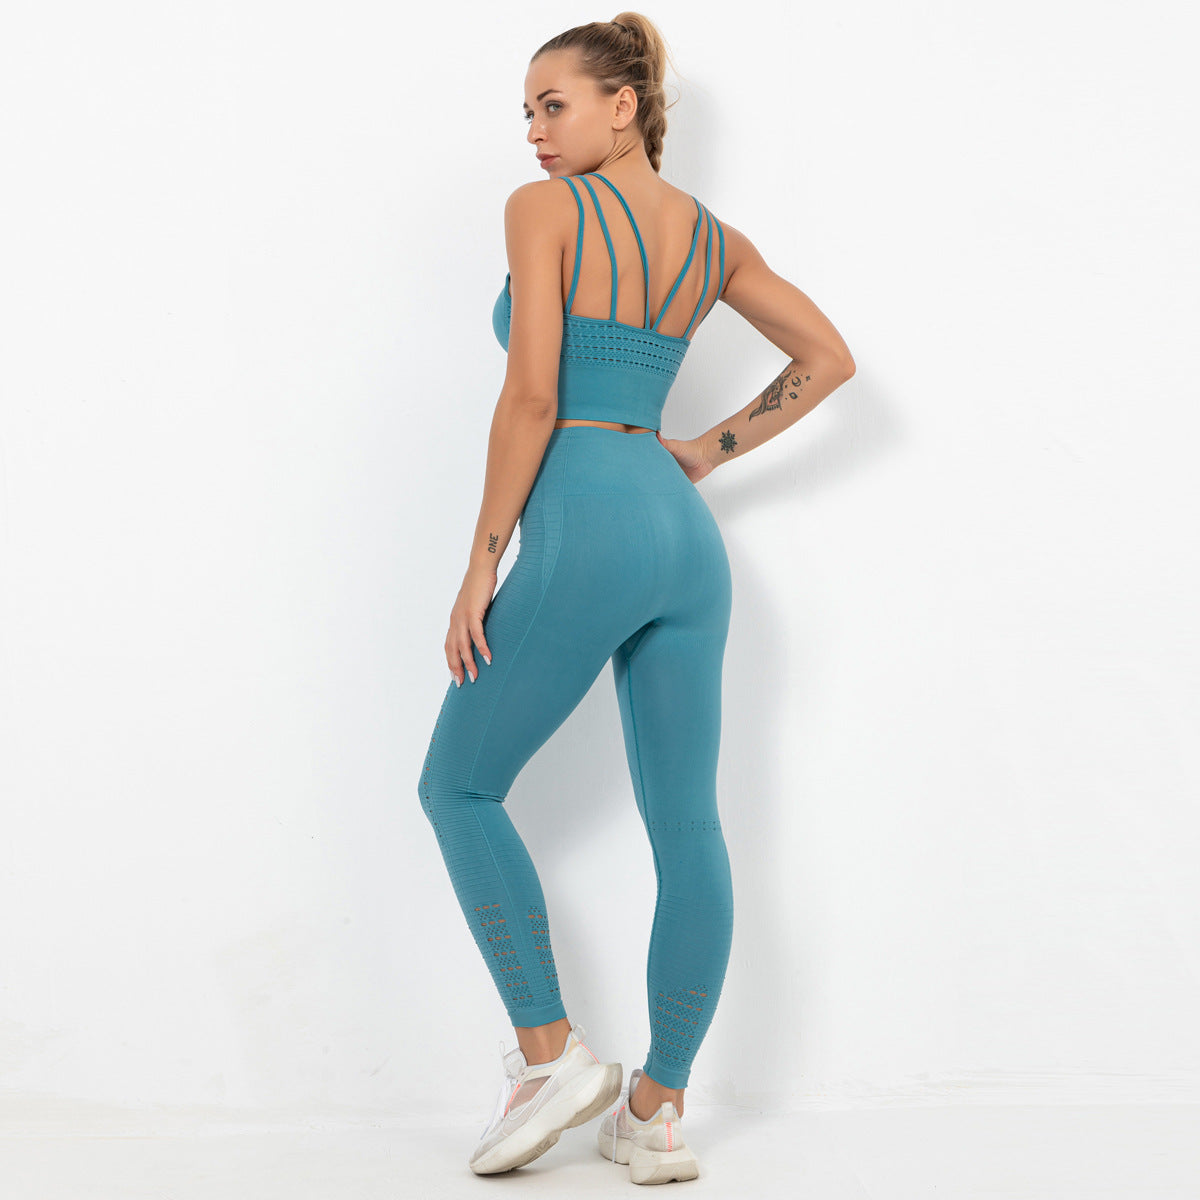 2020 Women Seamless Hollow Out Hip Lift Yoga Suit Sportswear Training Suit Gym Suit YS-038